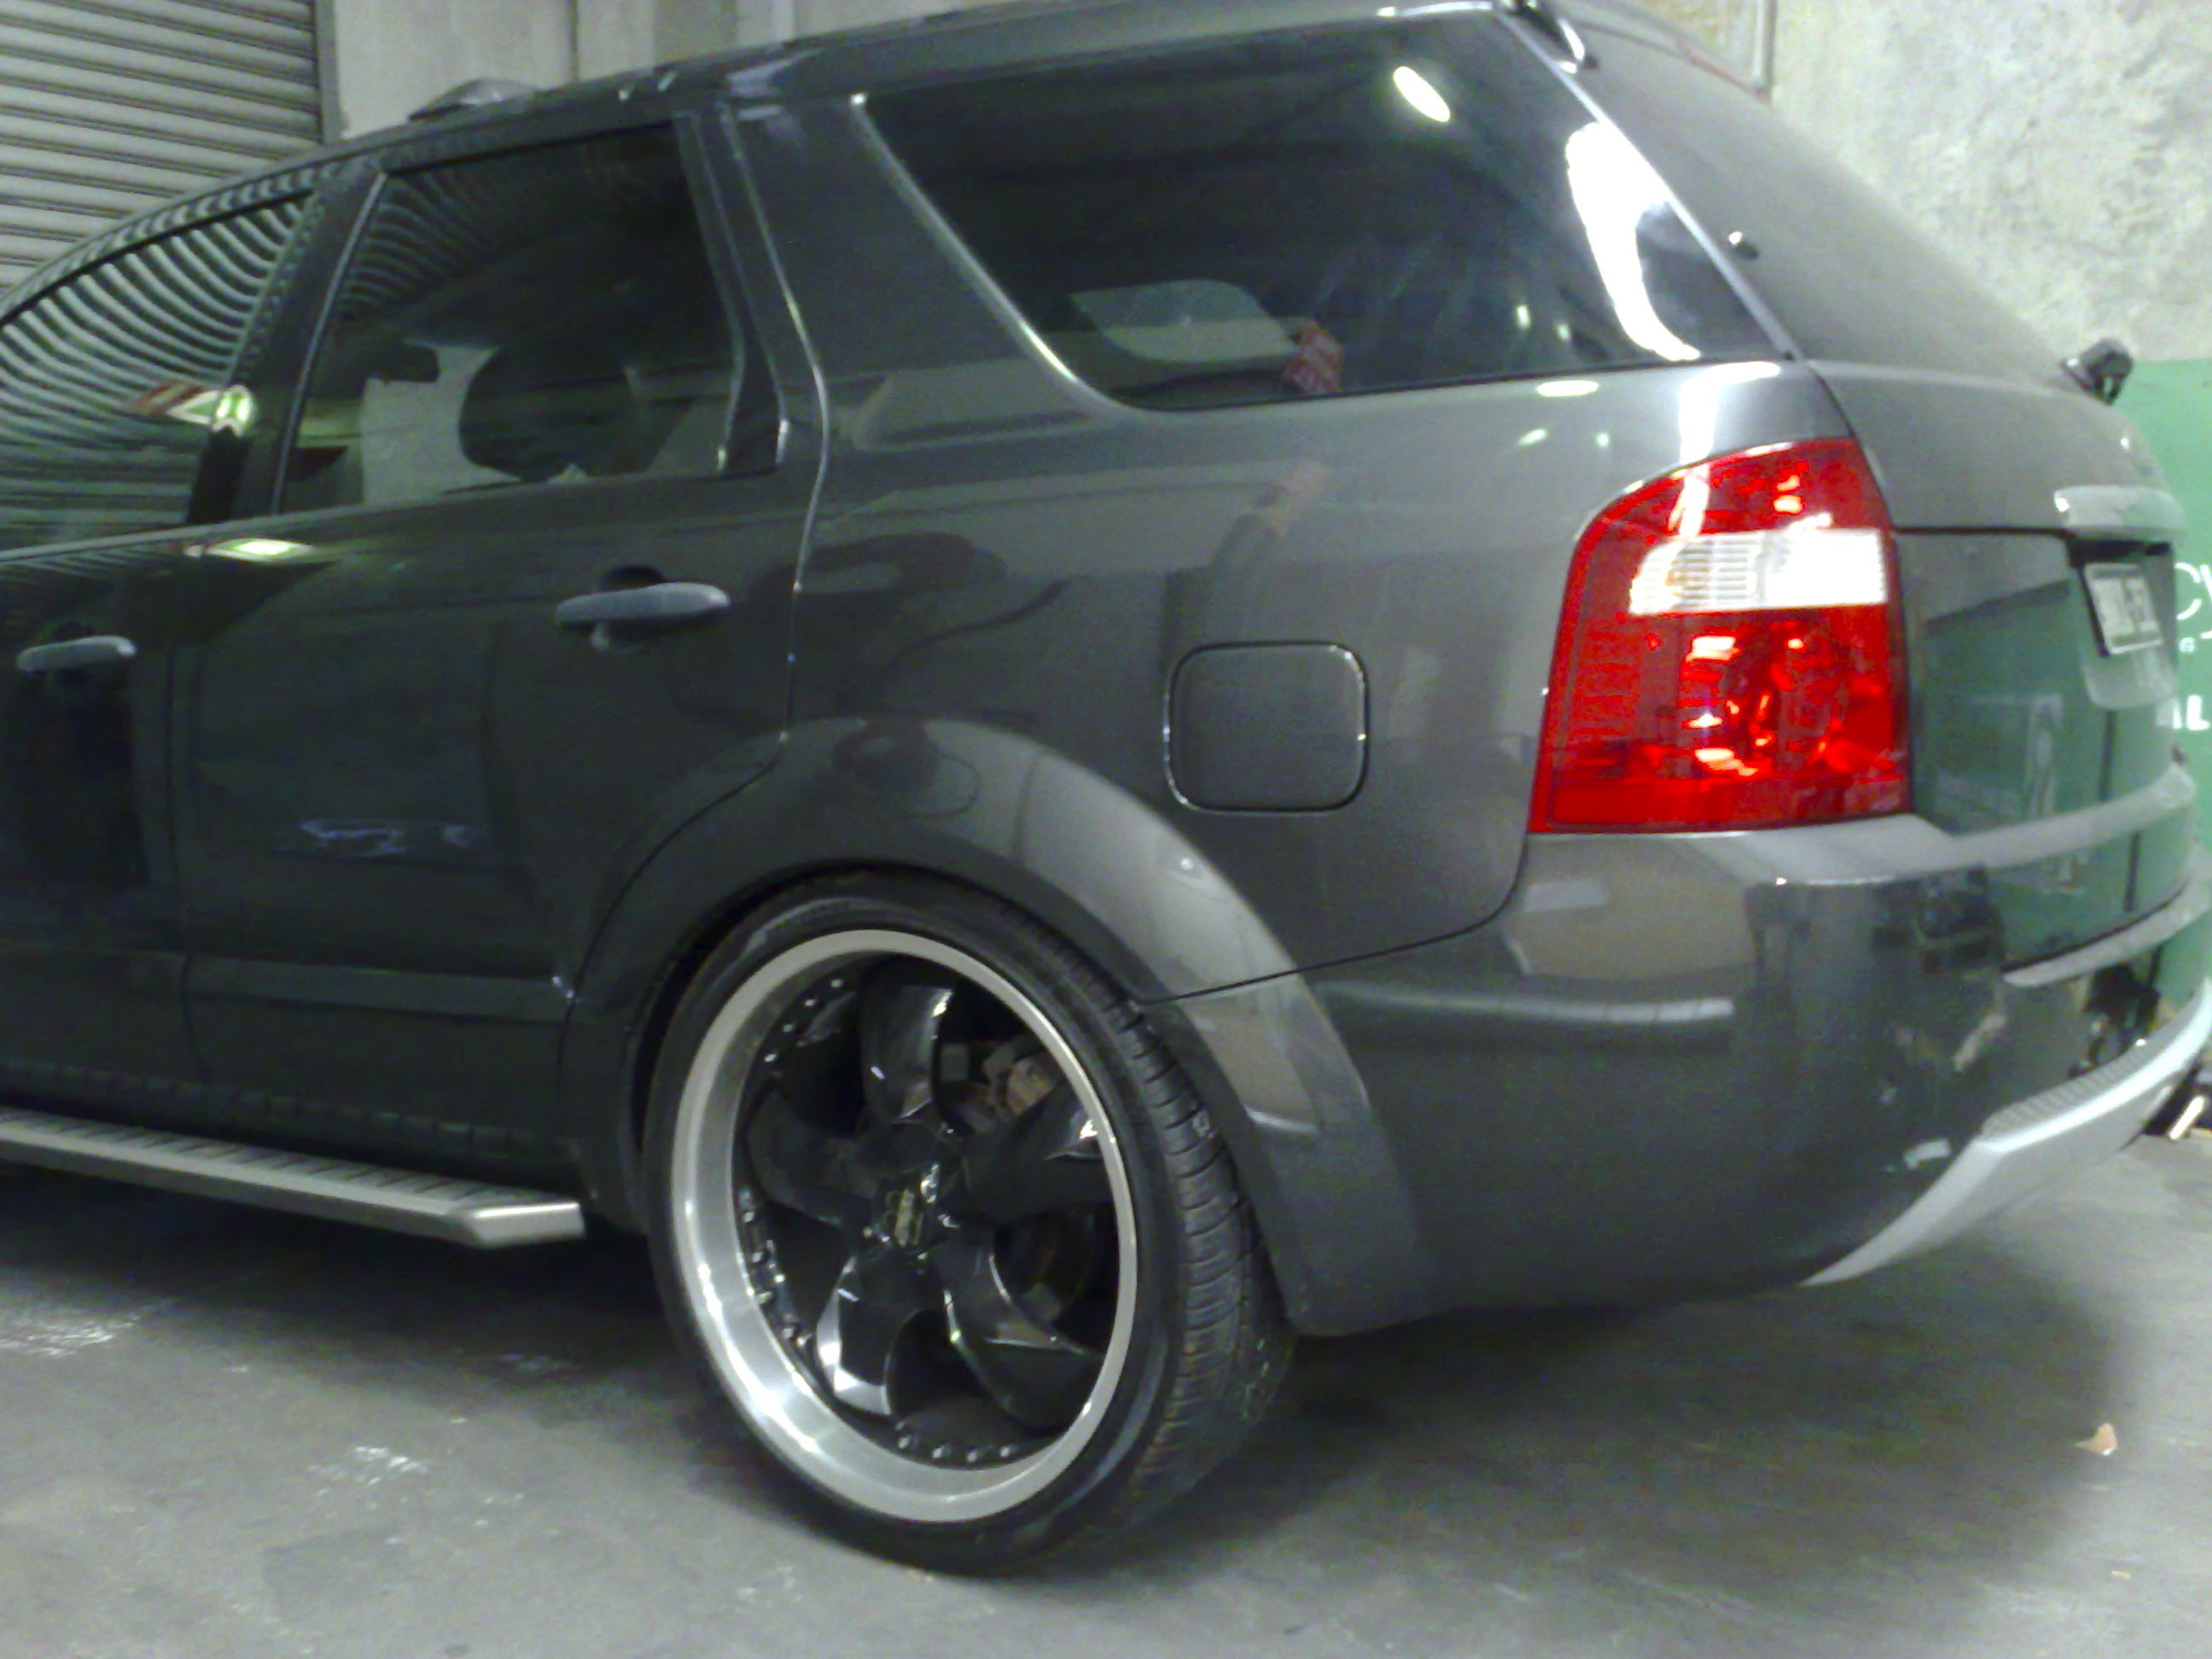 Ford Territory 2006 photo - 10